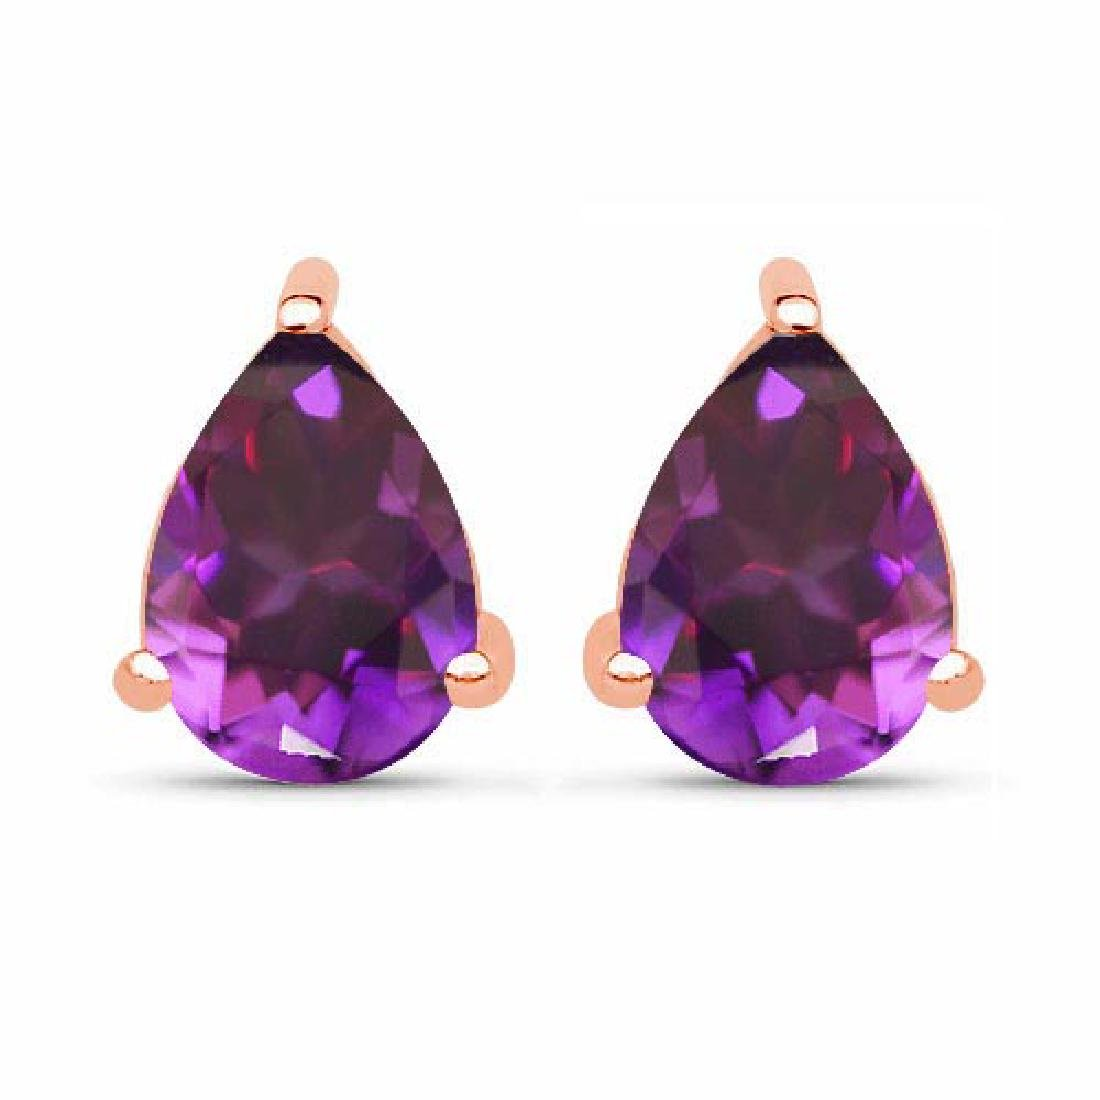 Certified 4.20 CTW Genuine Amethyst And 14K Rose Gold E